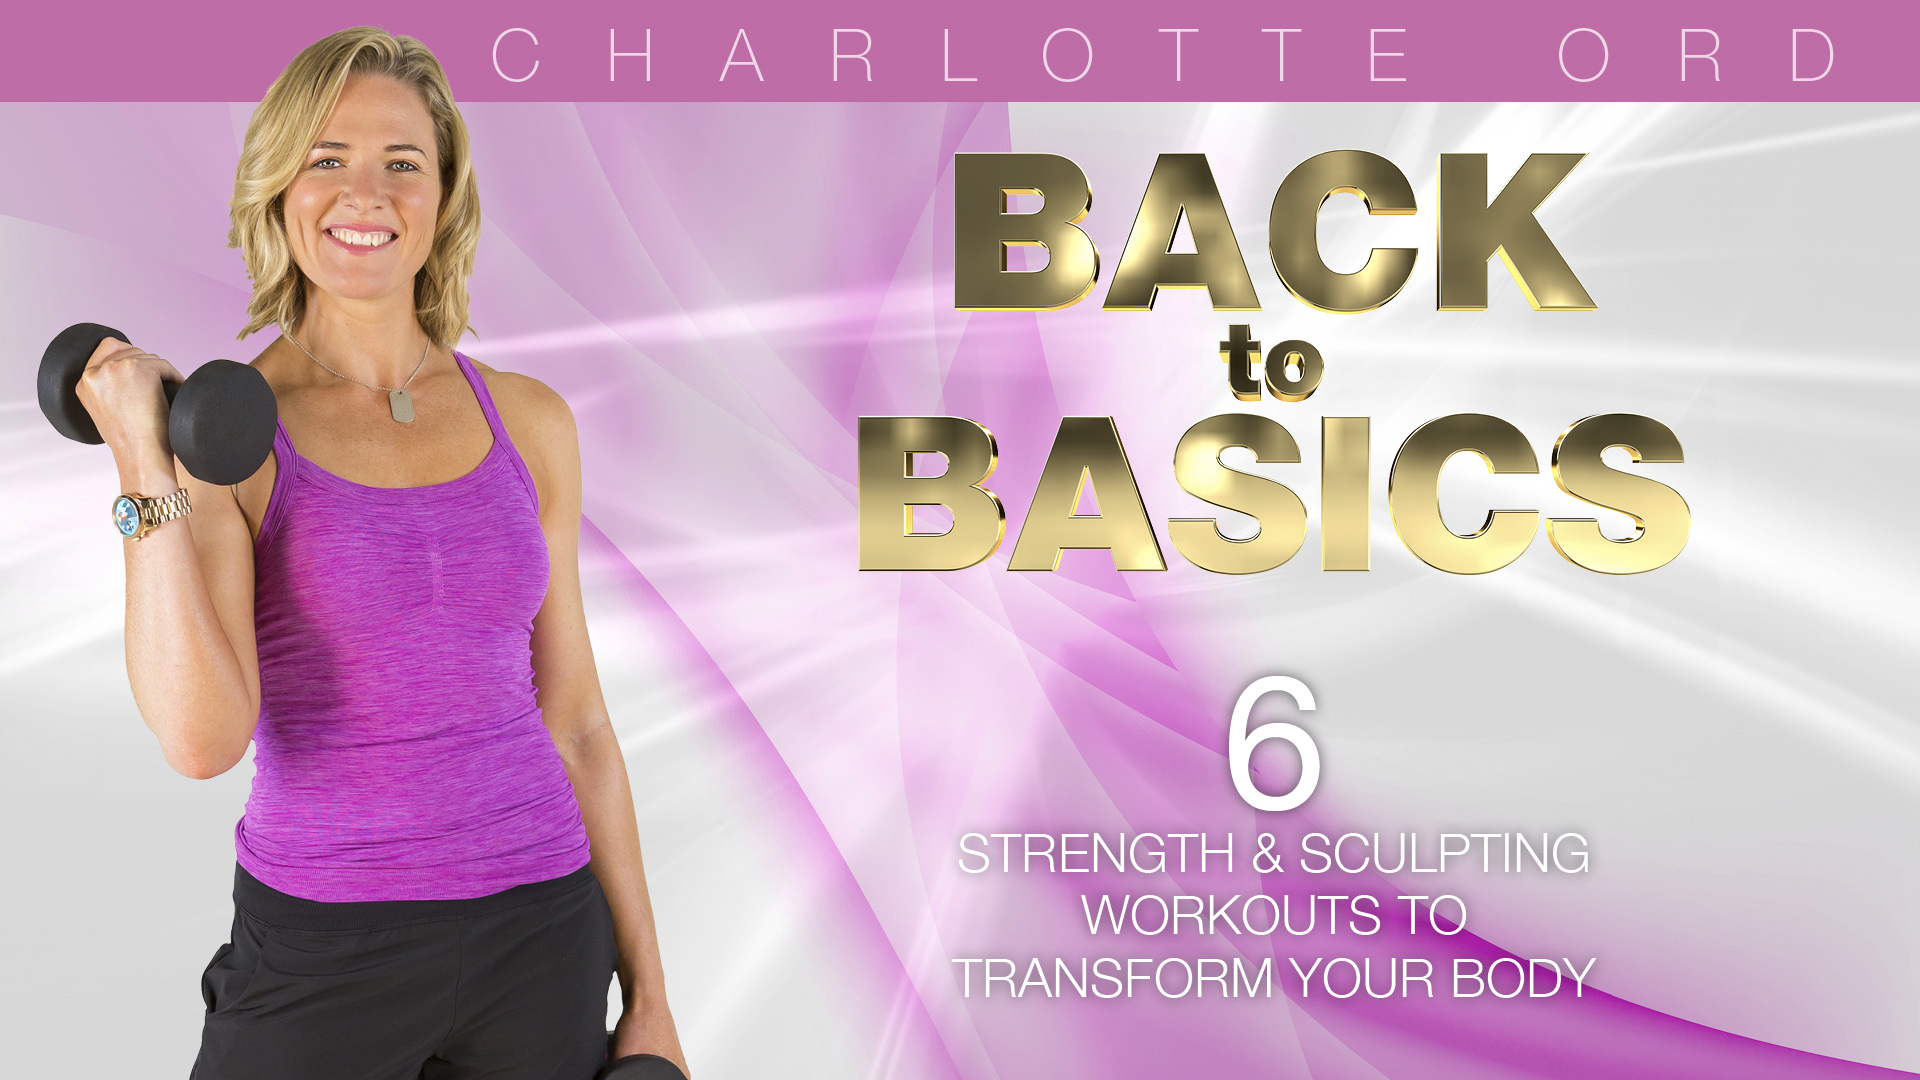 Back To Basics Fitness with Charlotte Ord